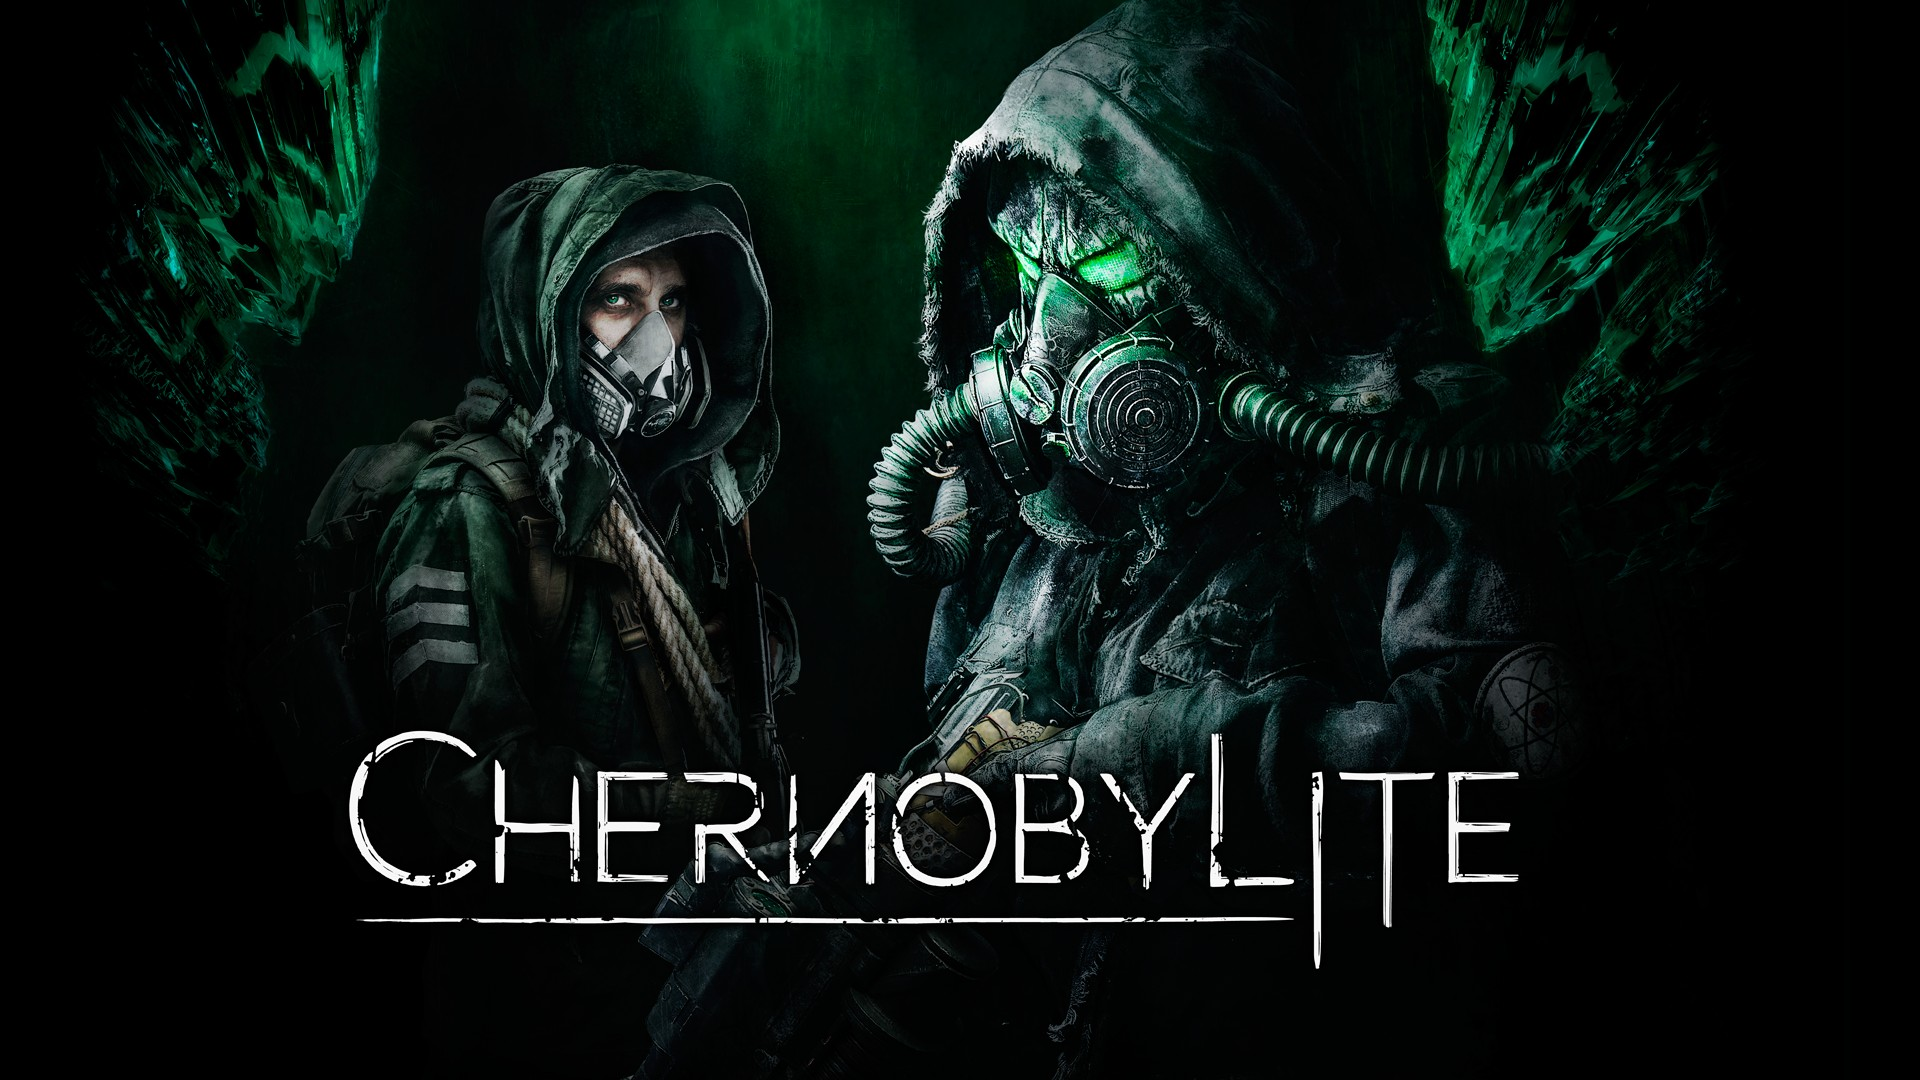 Chernobylite - key art | All in! Games, The Farm 51